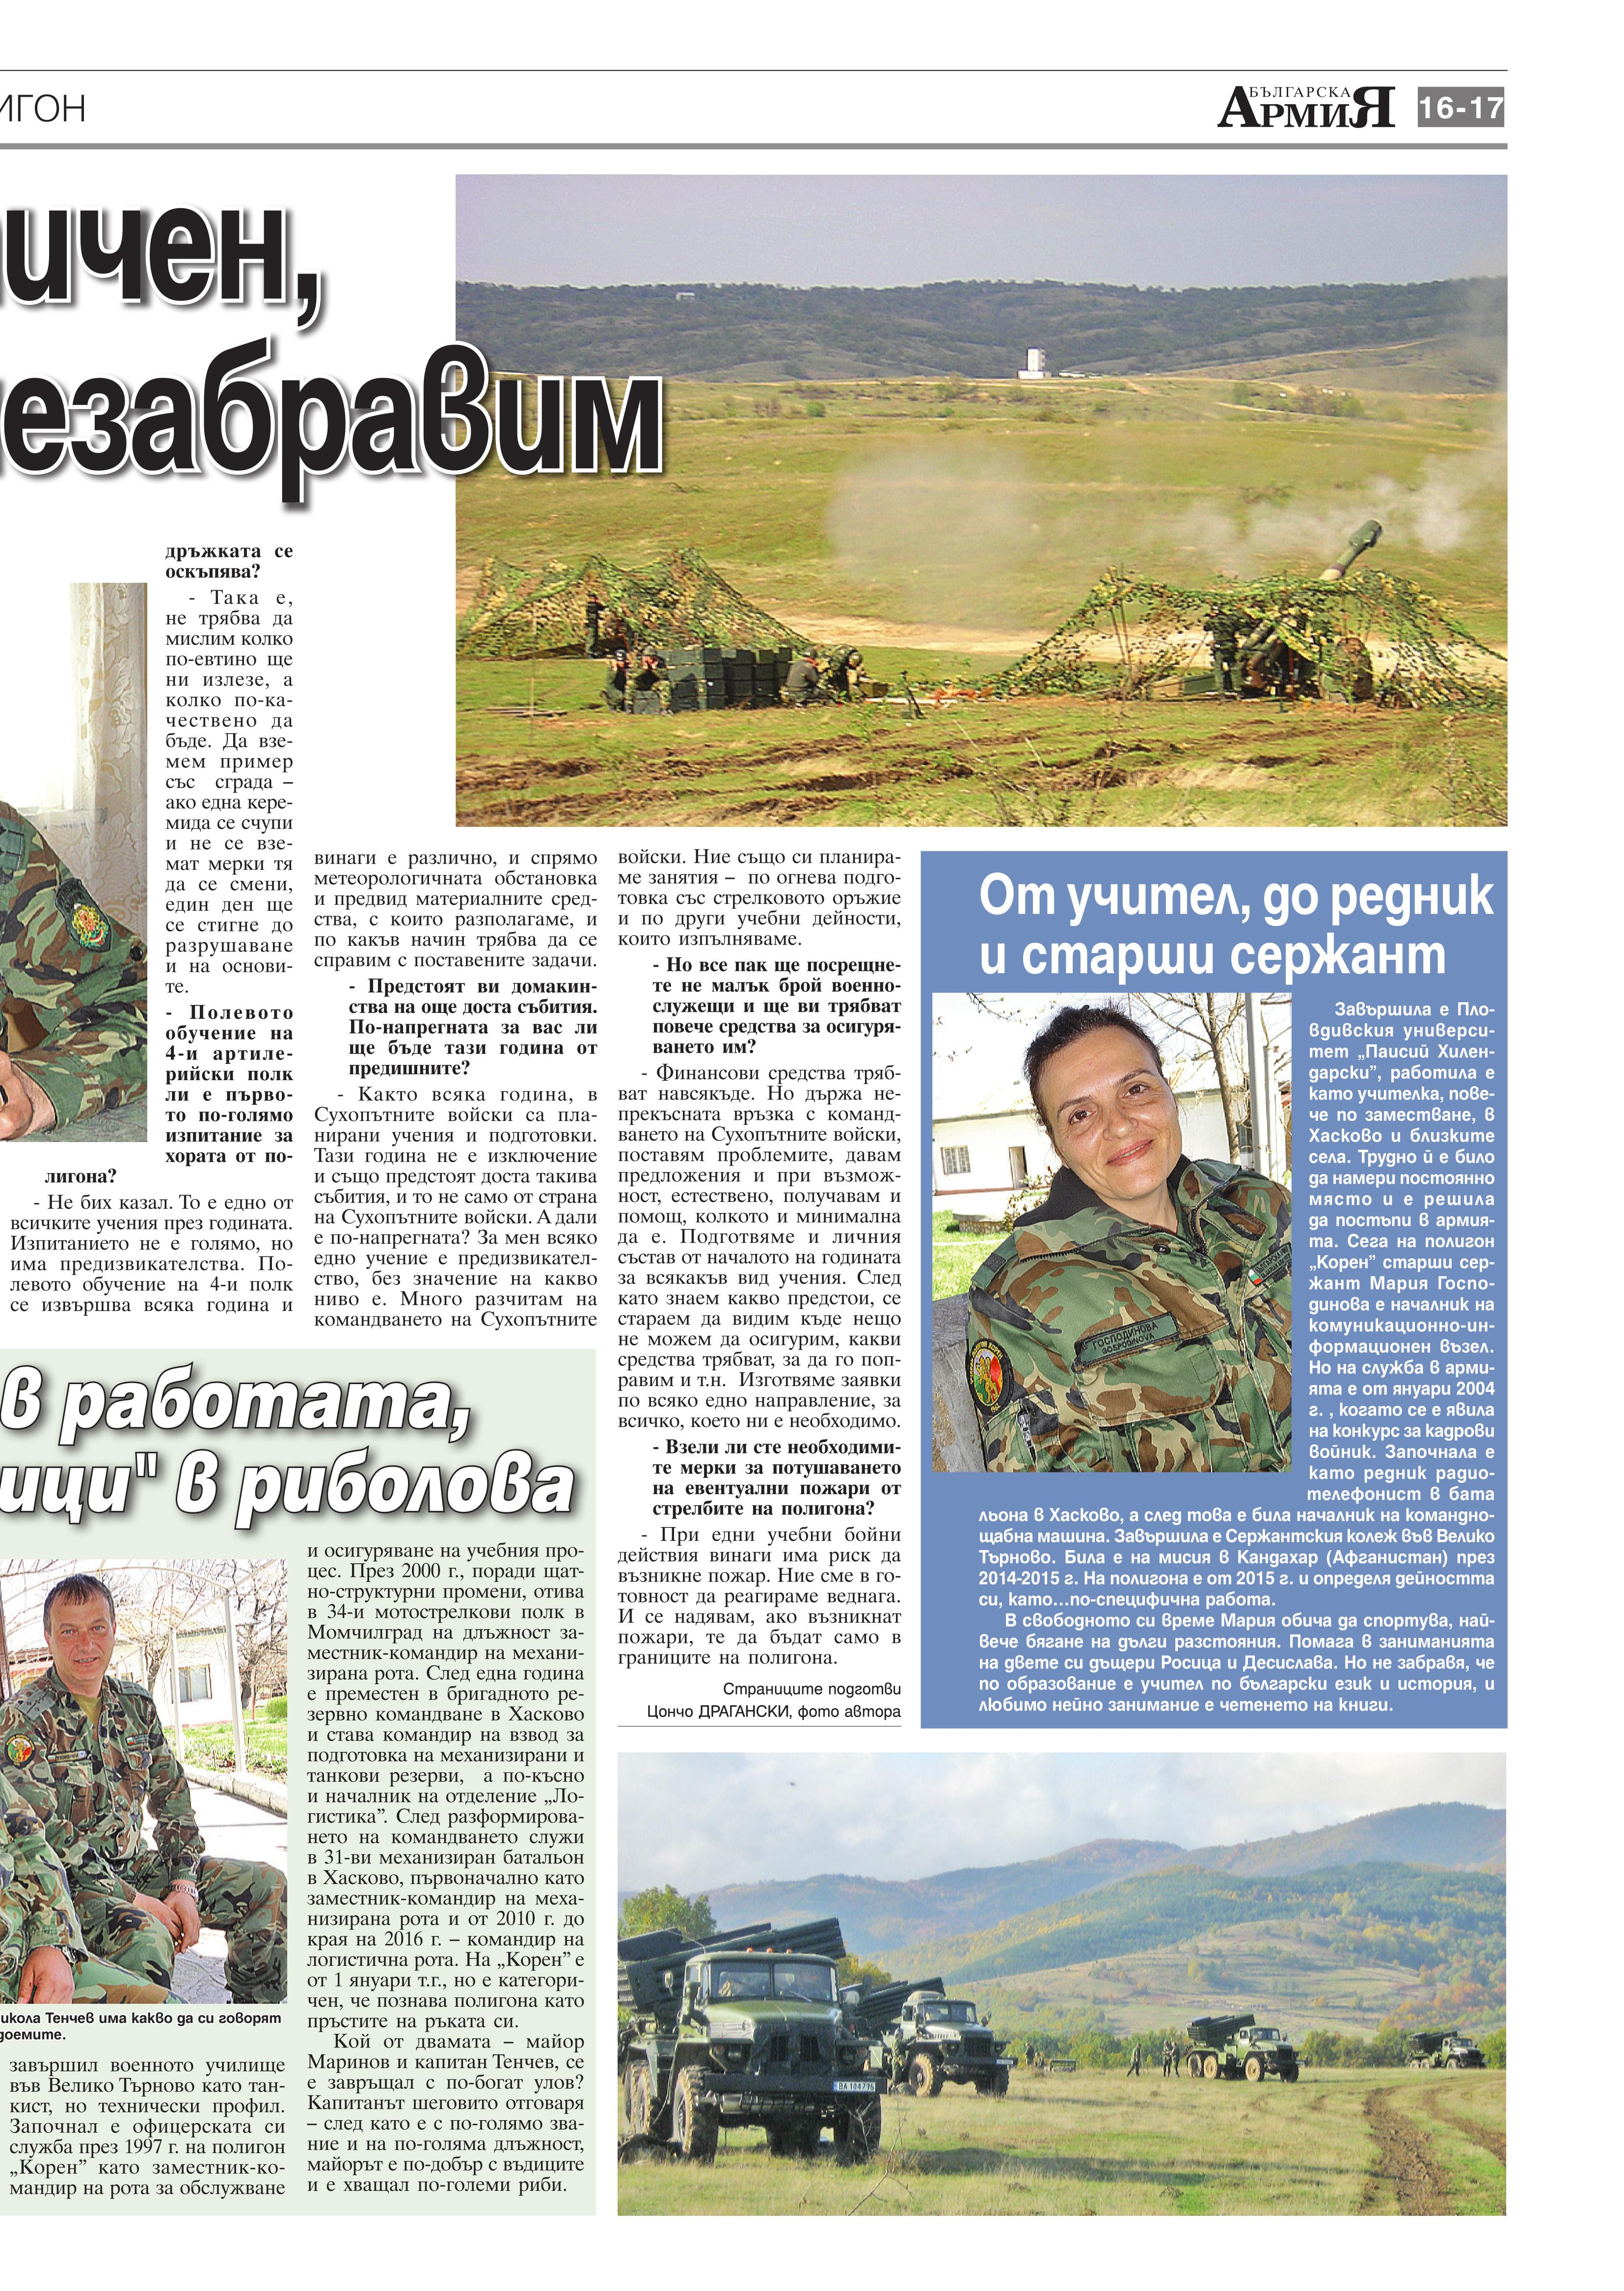 https://www.armymedia.bg/wp-content/uploads/2015/06/17.page1_-18.jpg